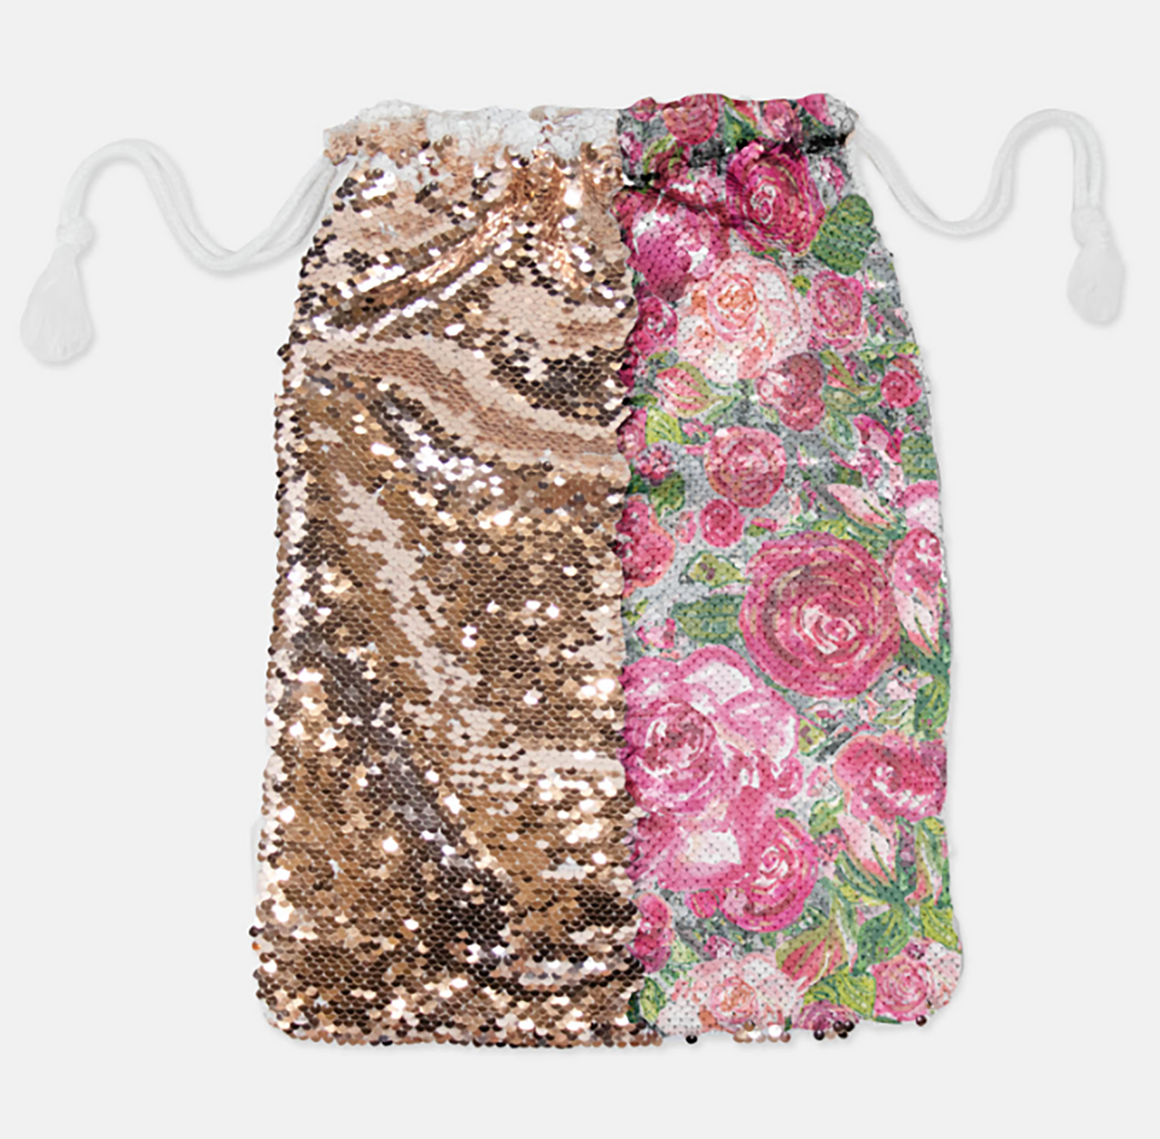 DRAWSTRING BAG - ROSE'S COTTAGE / ROSE GOLD SEQUINS - Accessory Pouches - Dreams After All